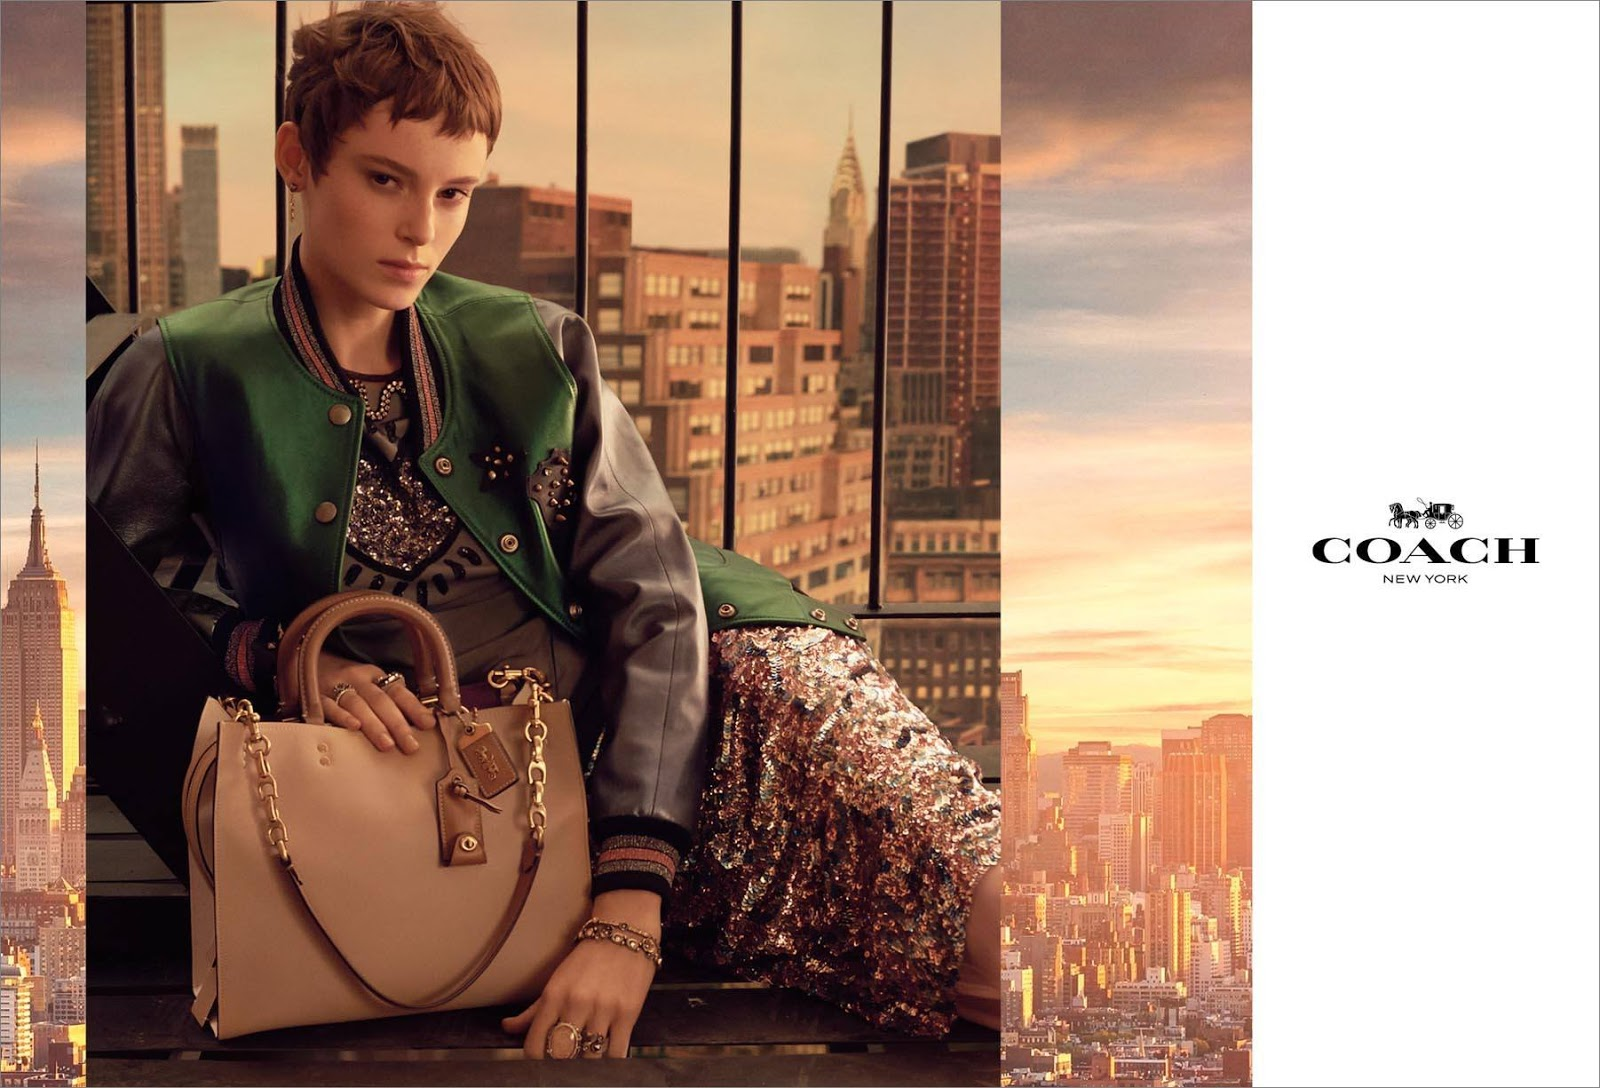 Coach Spring/Summer 2018 Campaign